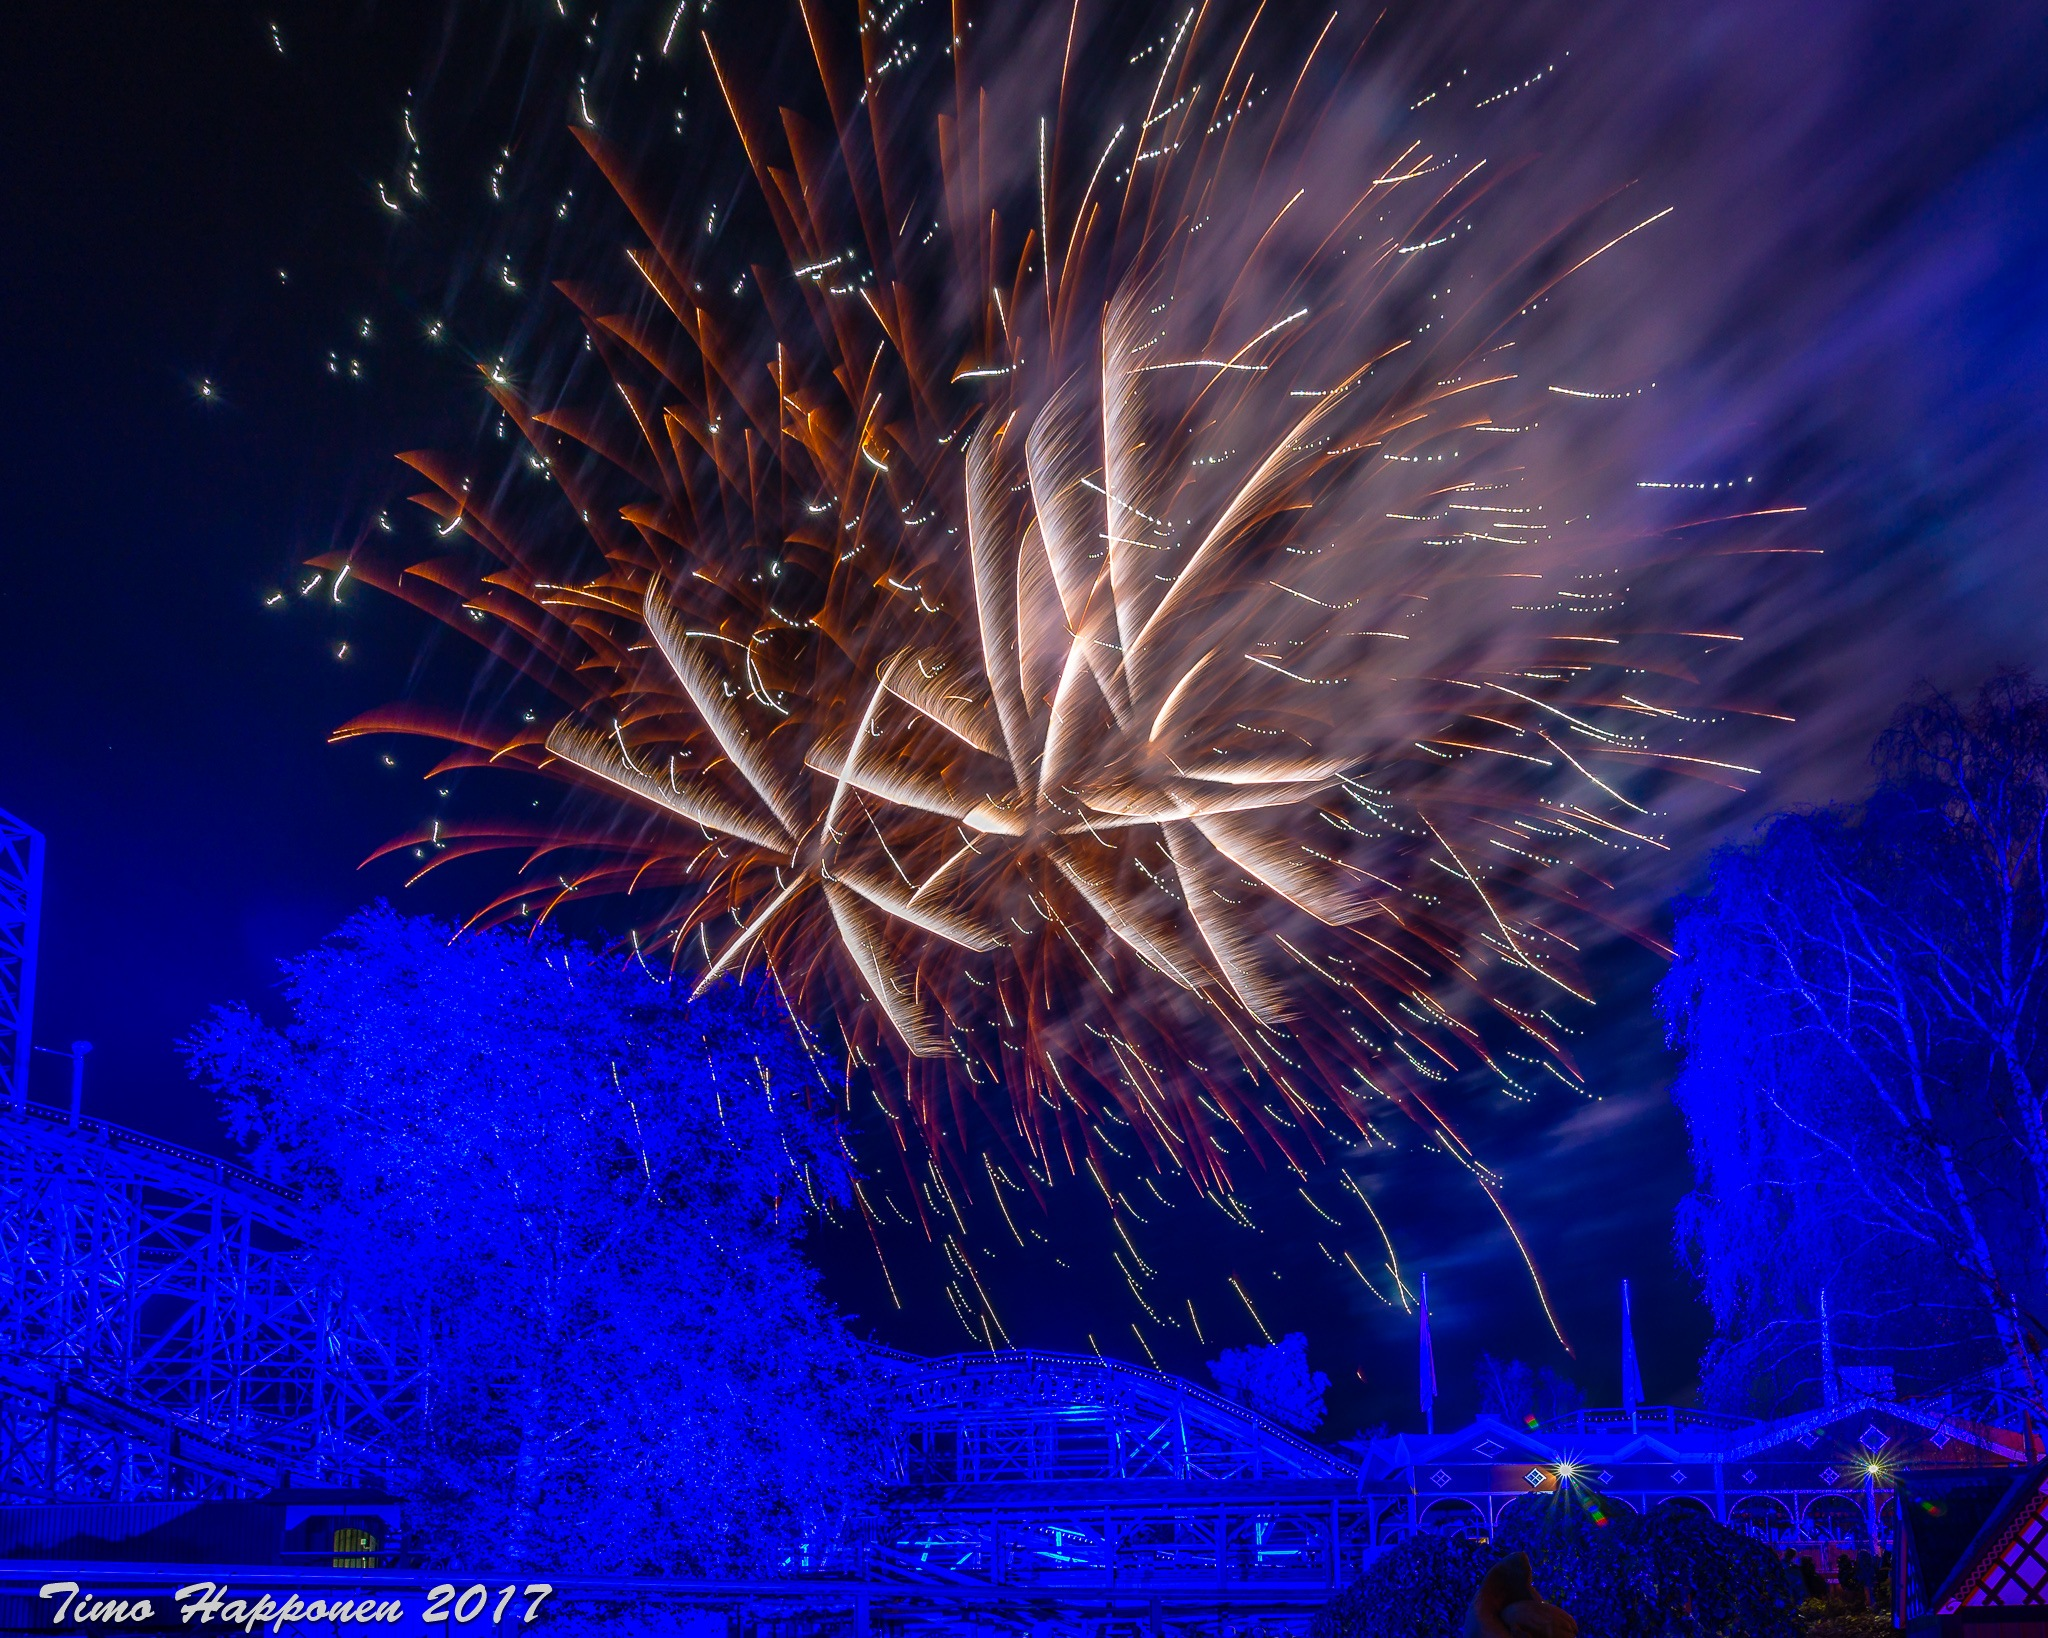 Fireworks by Timo Happonen